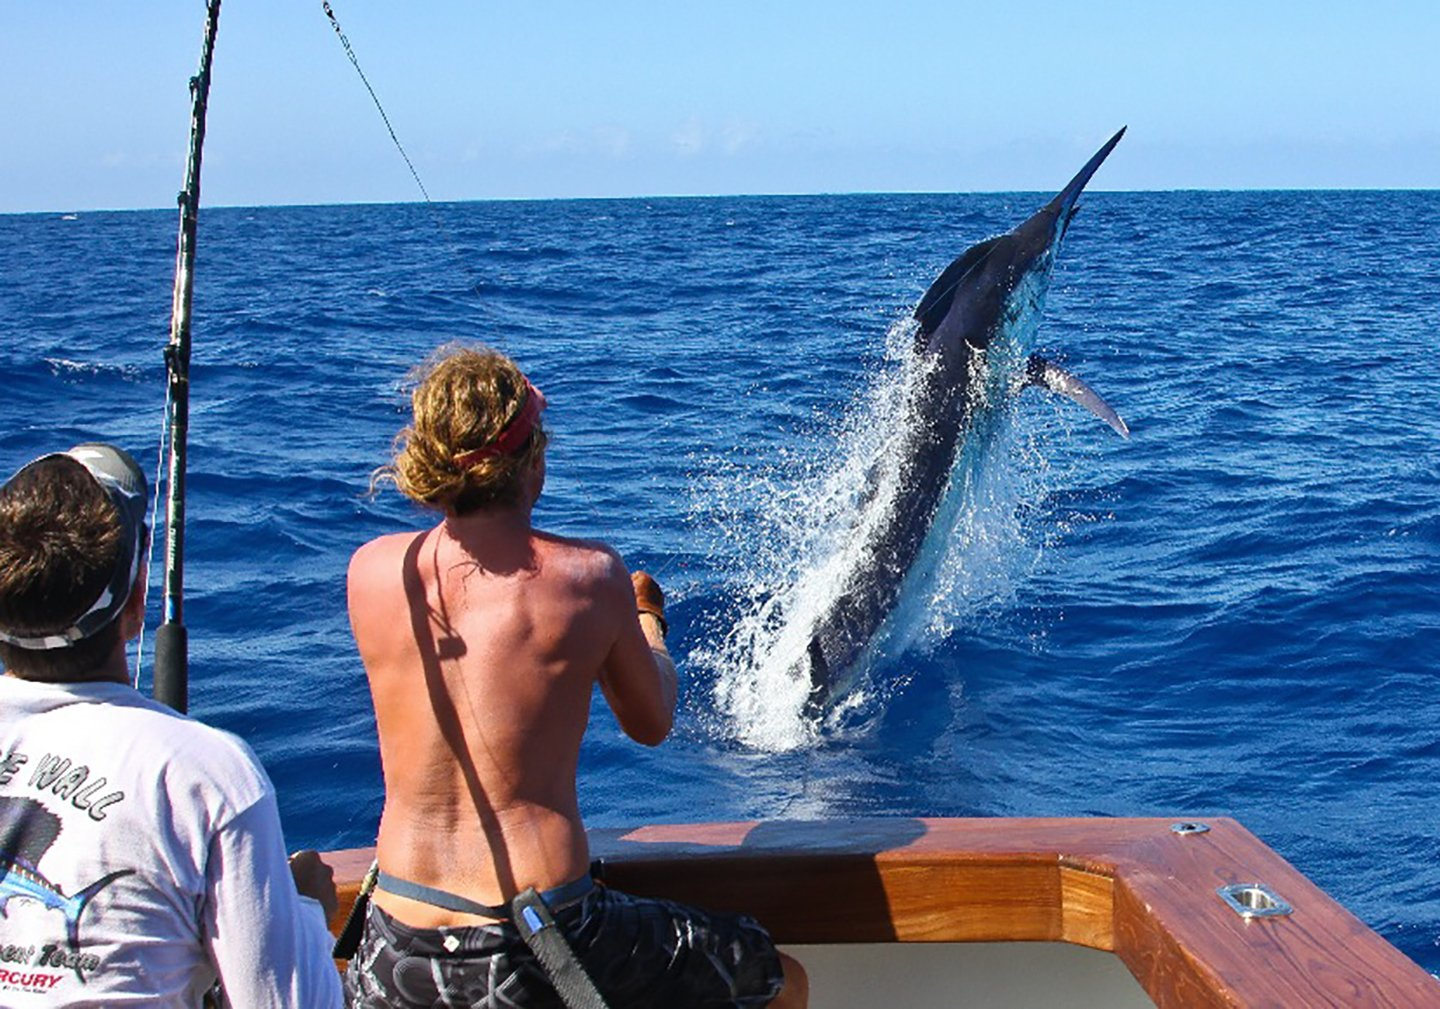 A topless male angler on a charter boat fighting a large Black Marlin which is jumping out of the water.